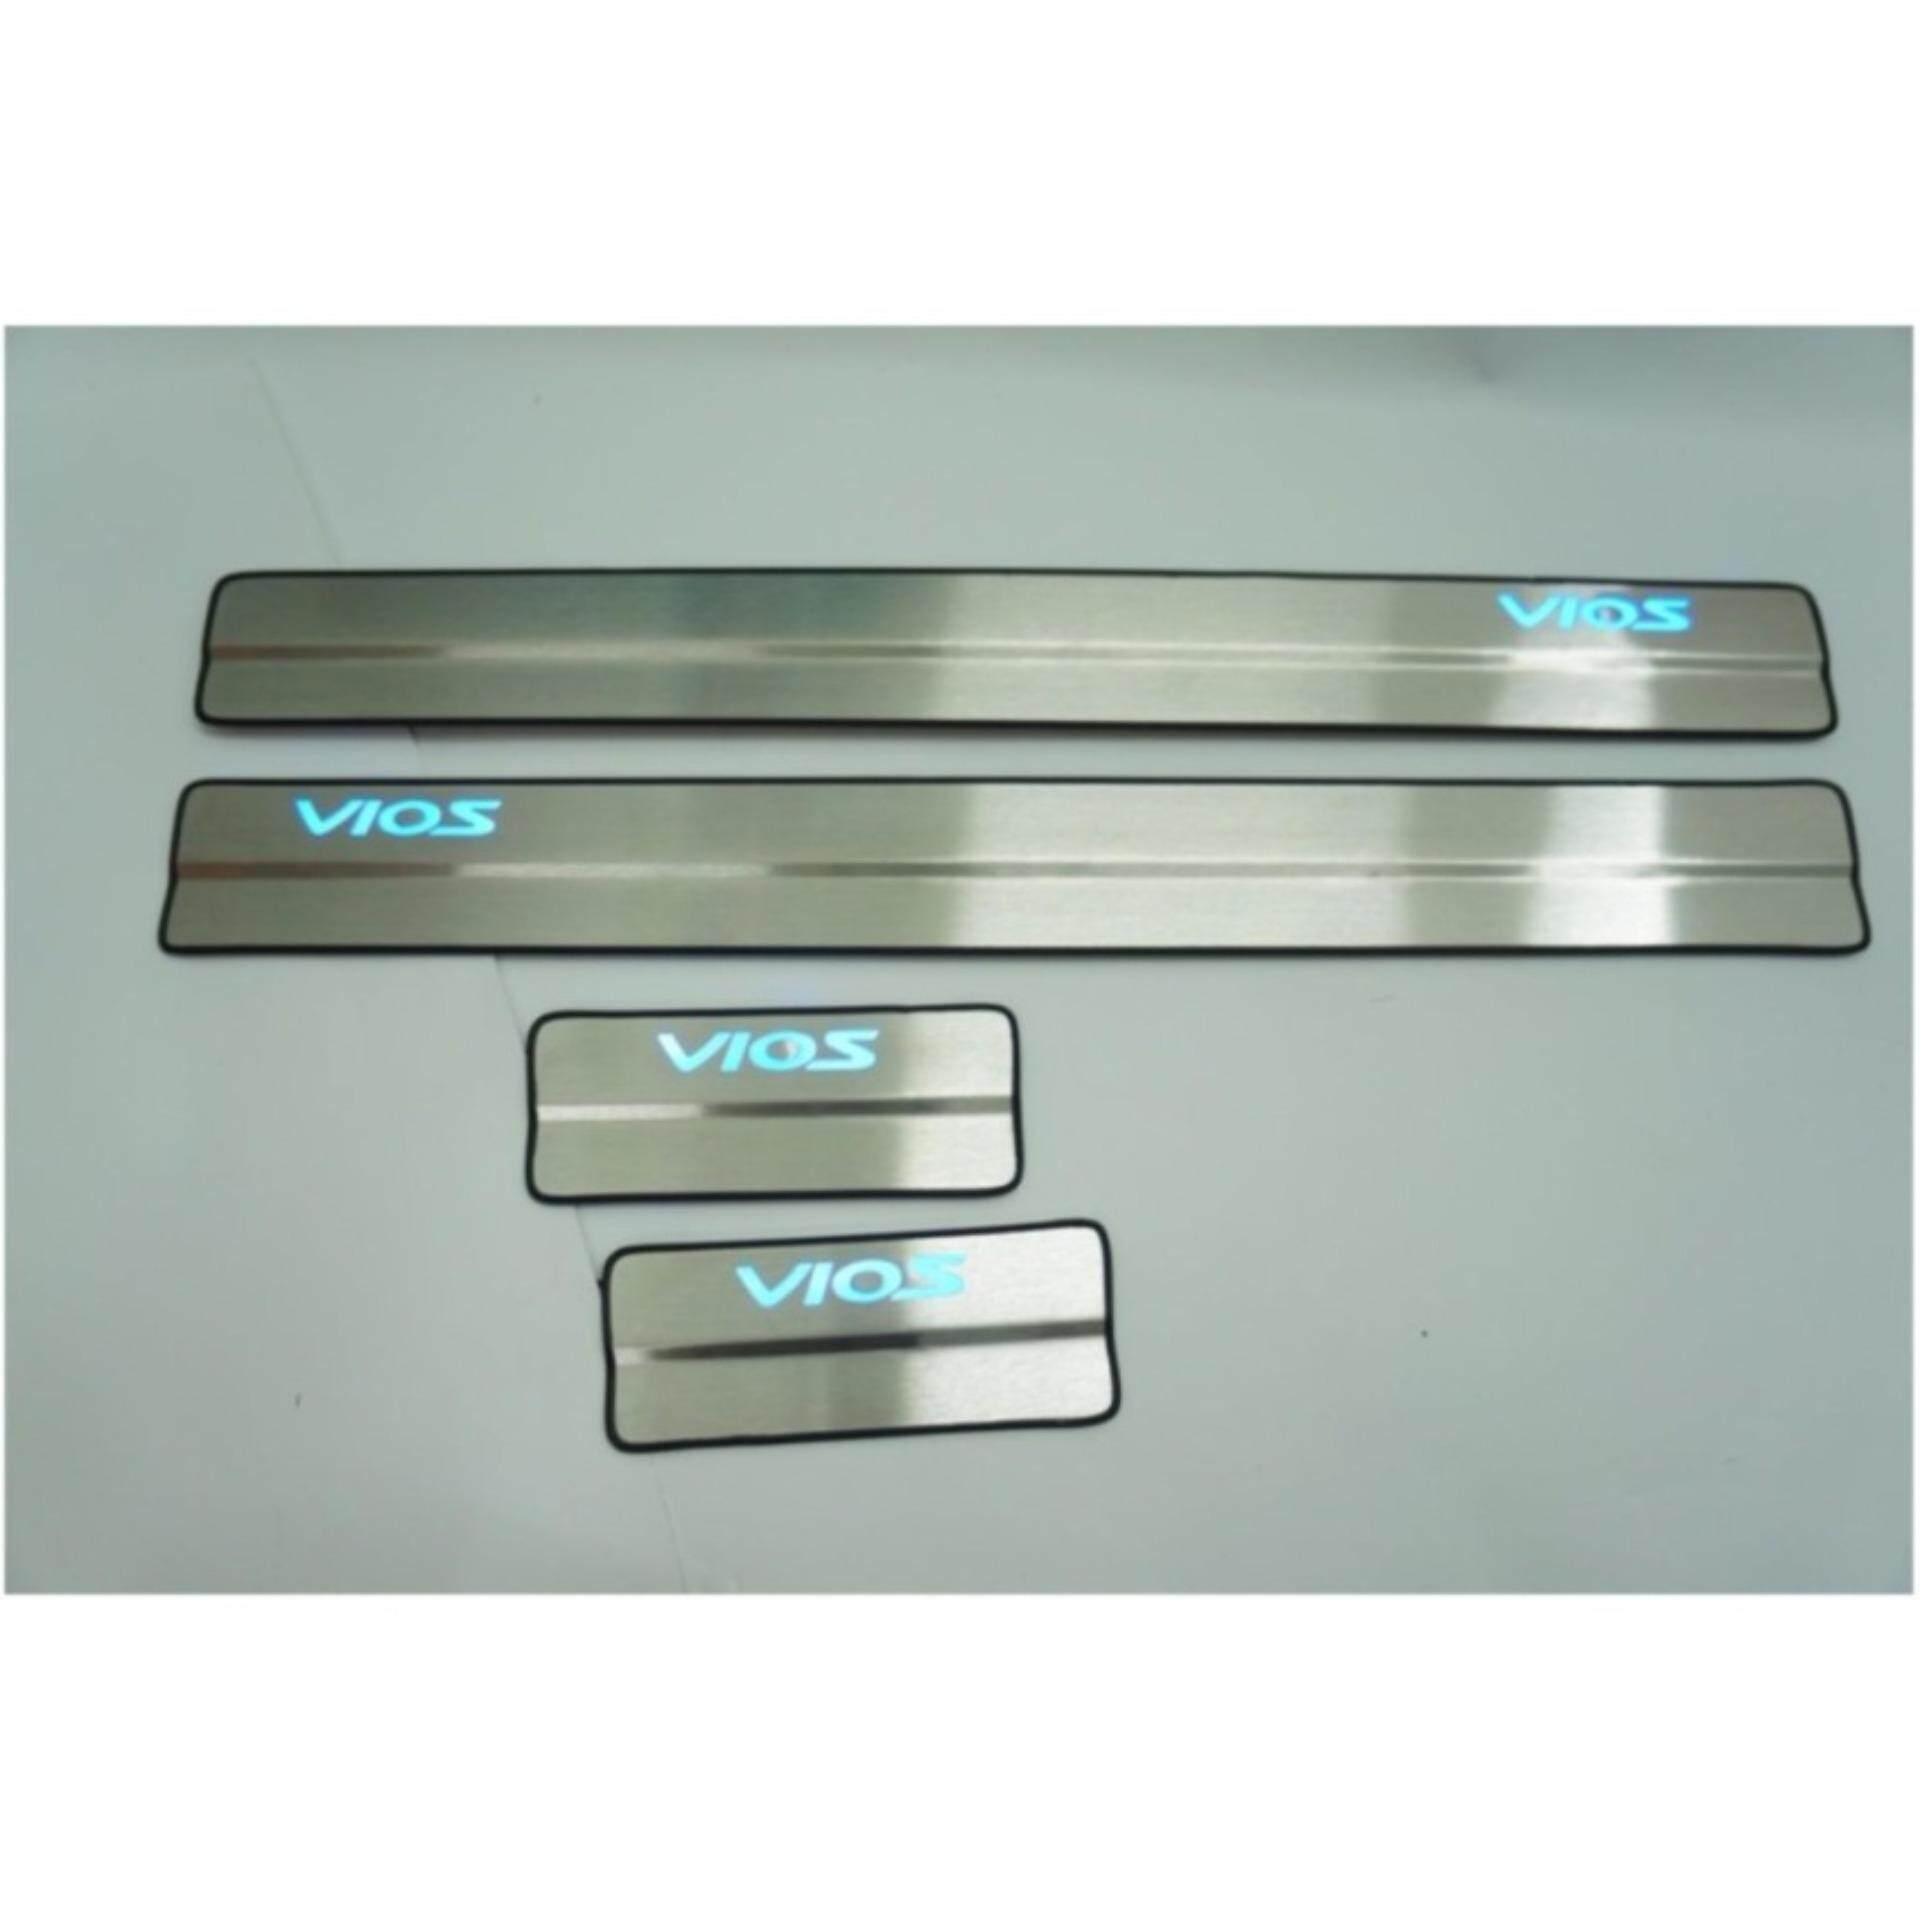 Toyota Vios 2014 Side Steel Plate/Door Side Step With Led